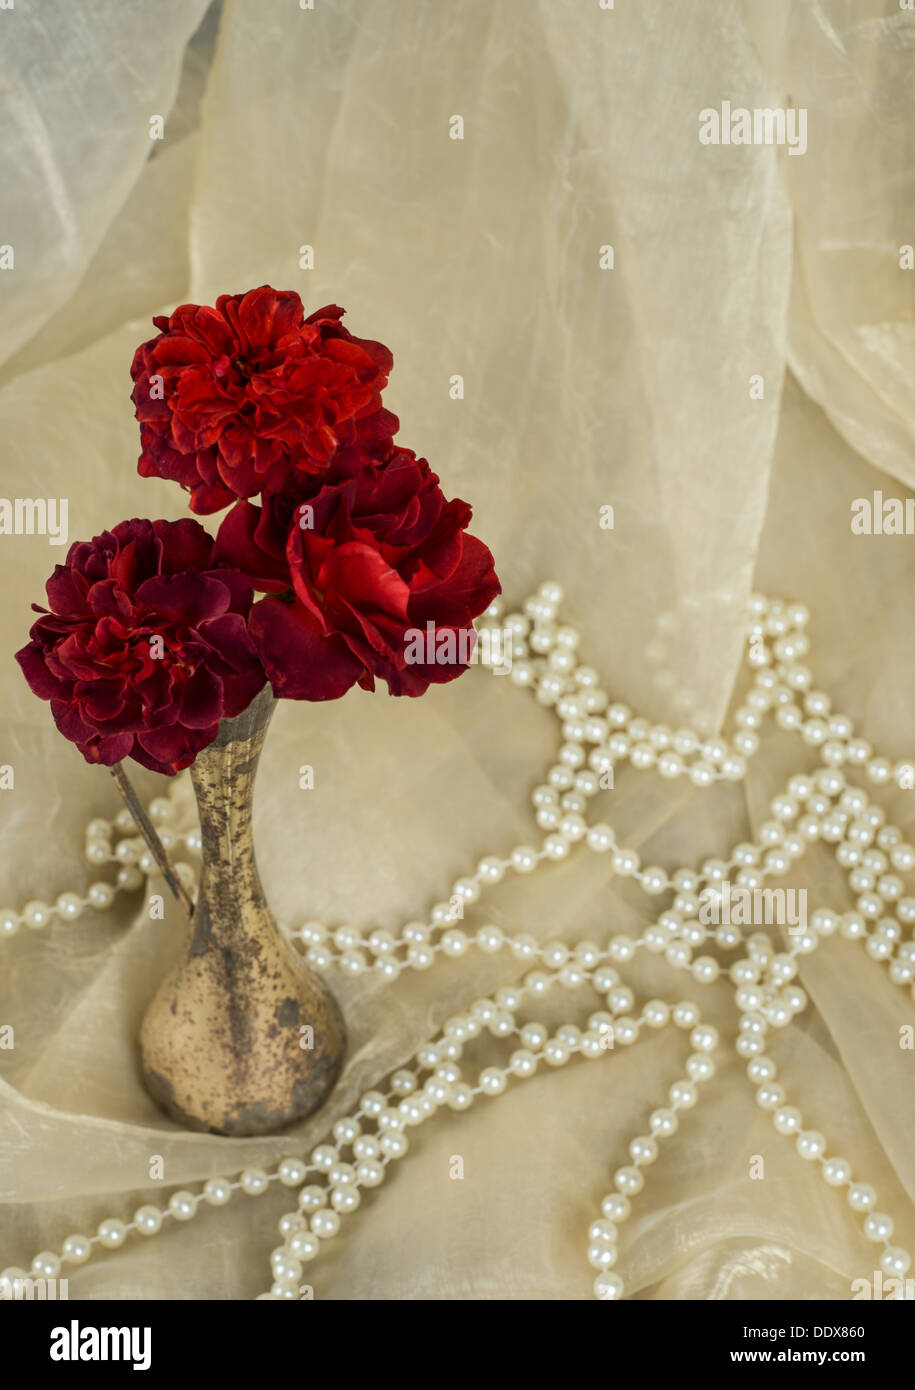 red roses in an antique silver vase with pearls on cream colored ...